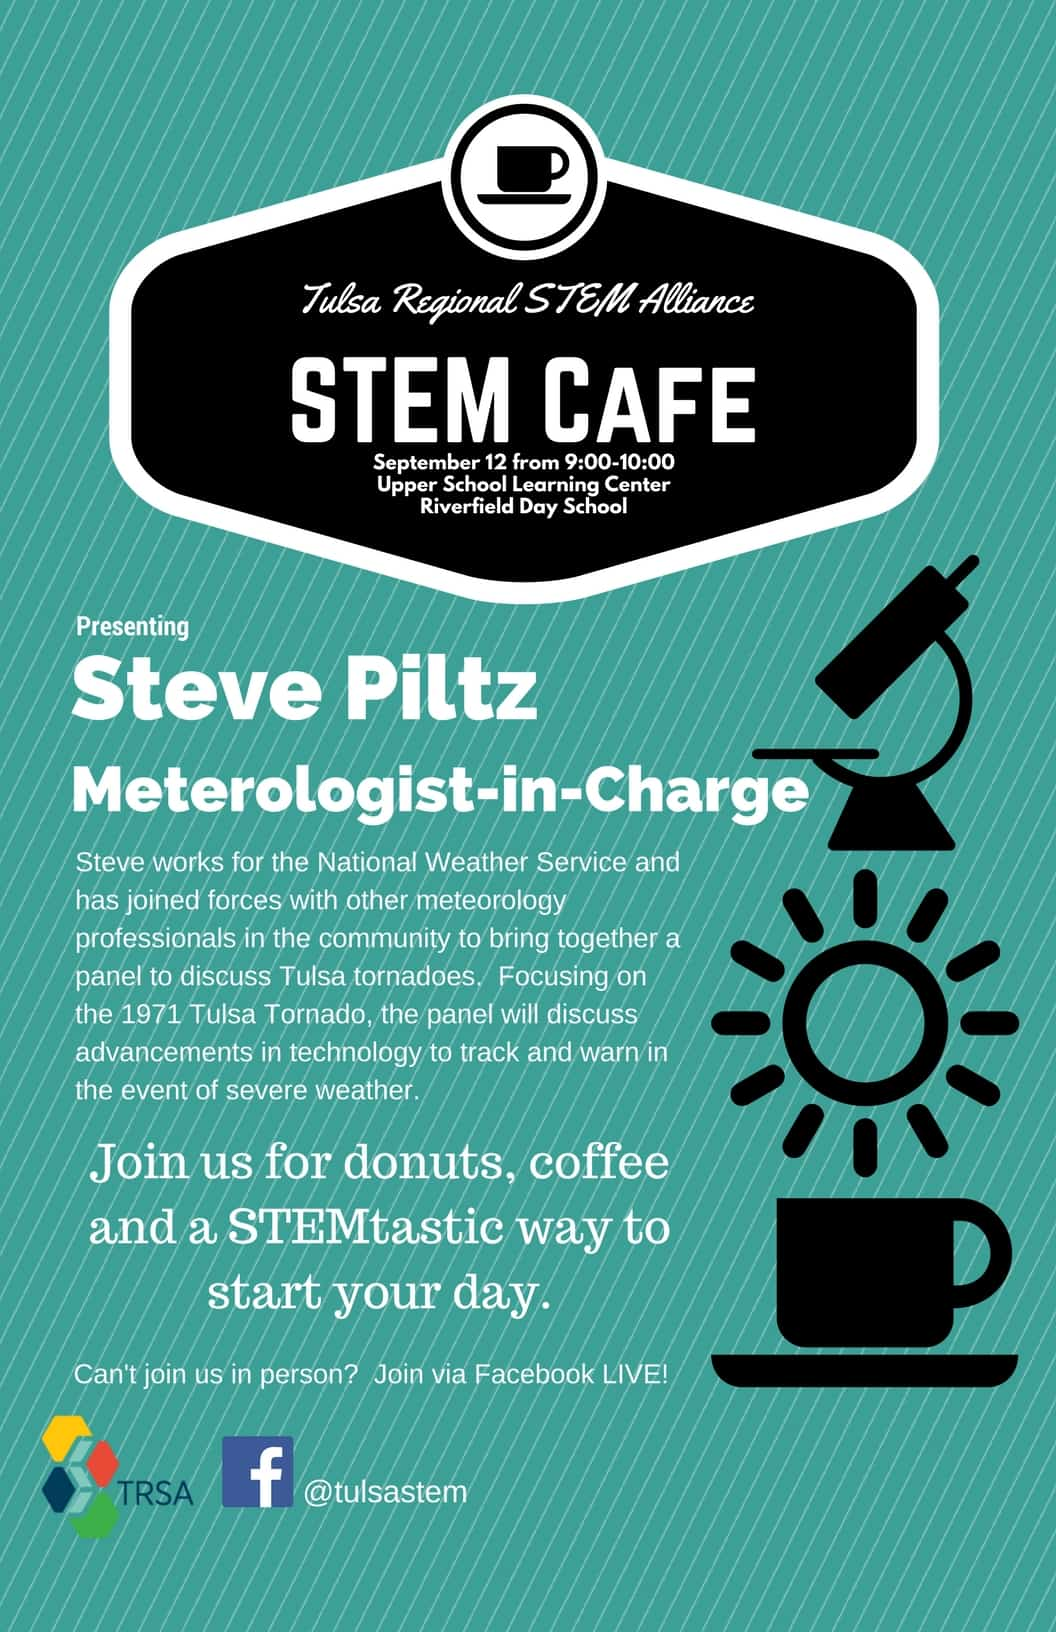 This September, join us at Riverfield Day School as Steve Piltz, Meteorologist-in-Charge at the National Weather Service brings a morning of informal STEM! Students and faculty can join us in-person for free coffee and donuts! Don't attend Riverfied? Don't Worry! We'll broadcast the event on Facebook Live and post a full video on our YouTube channel.